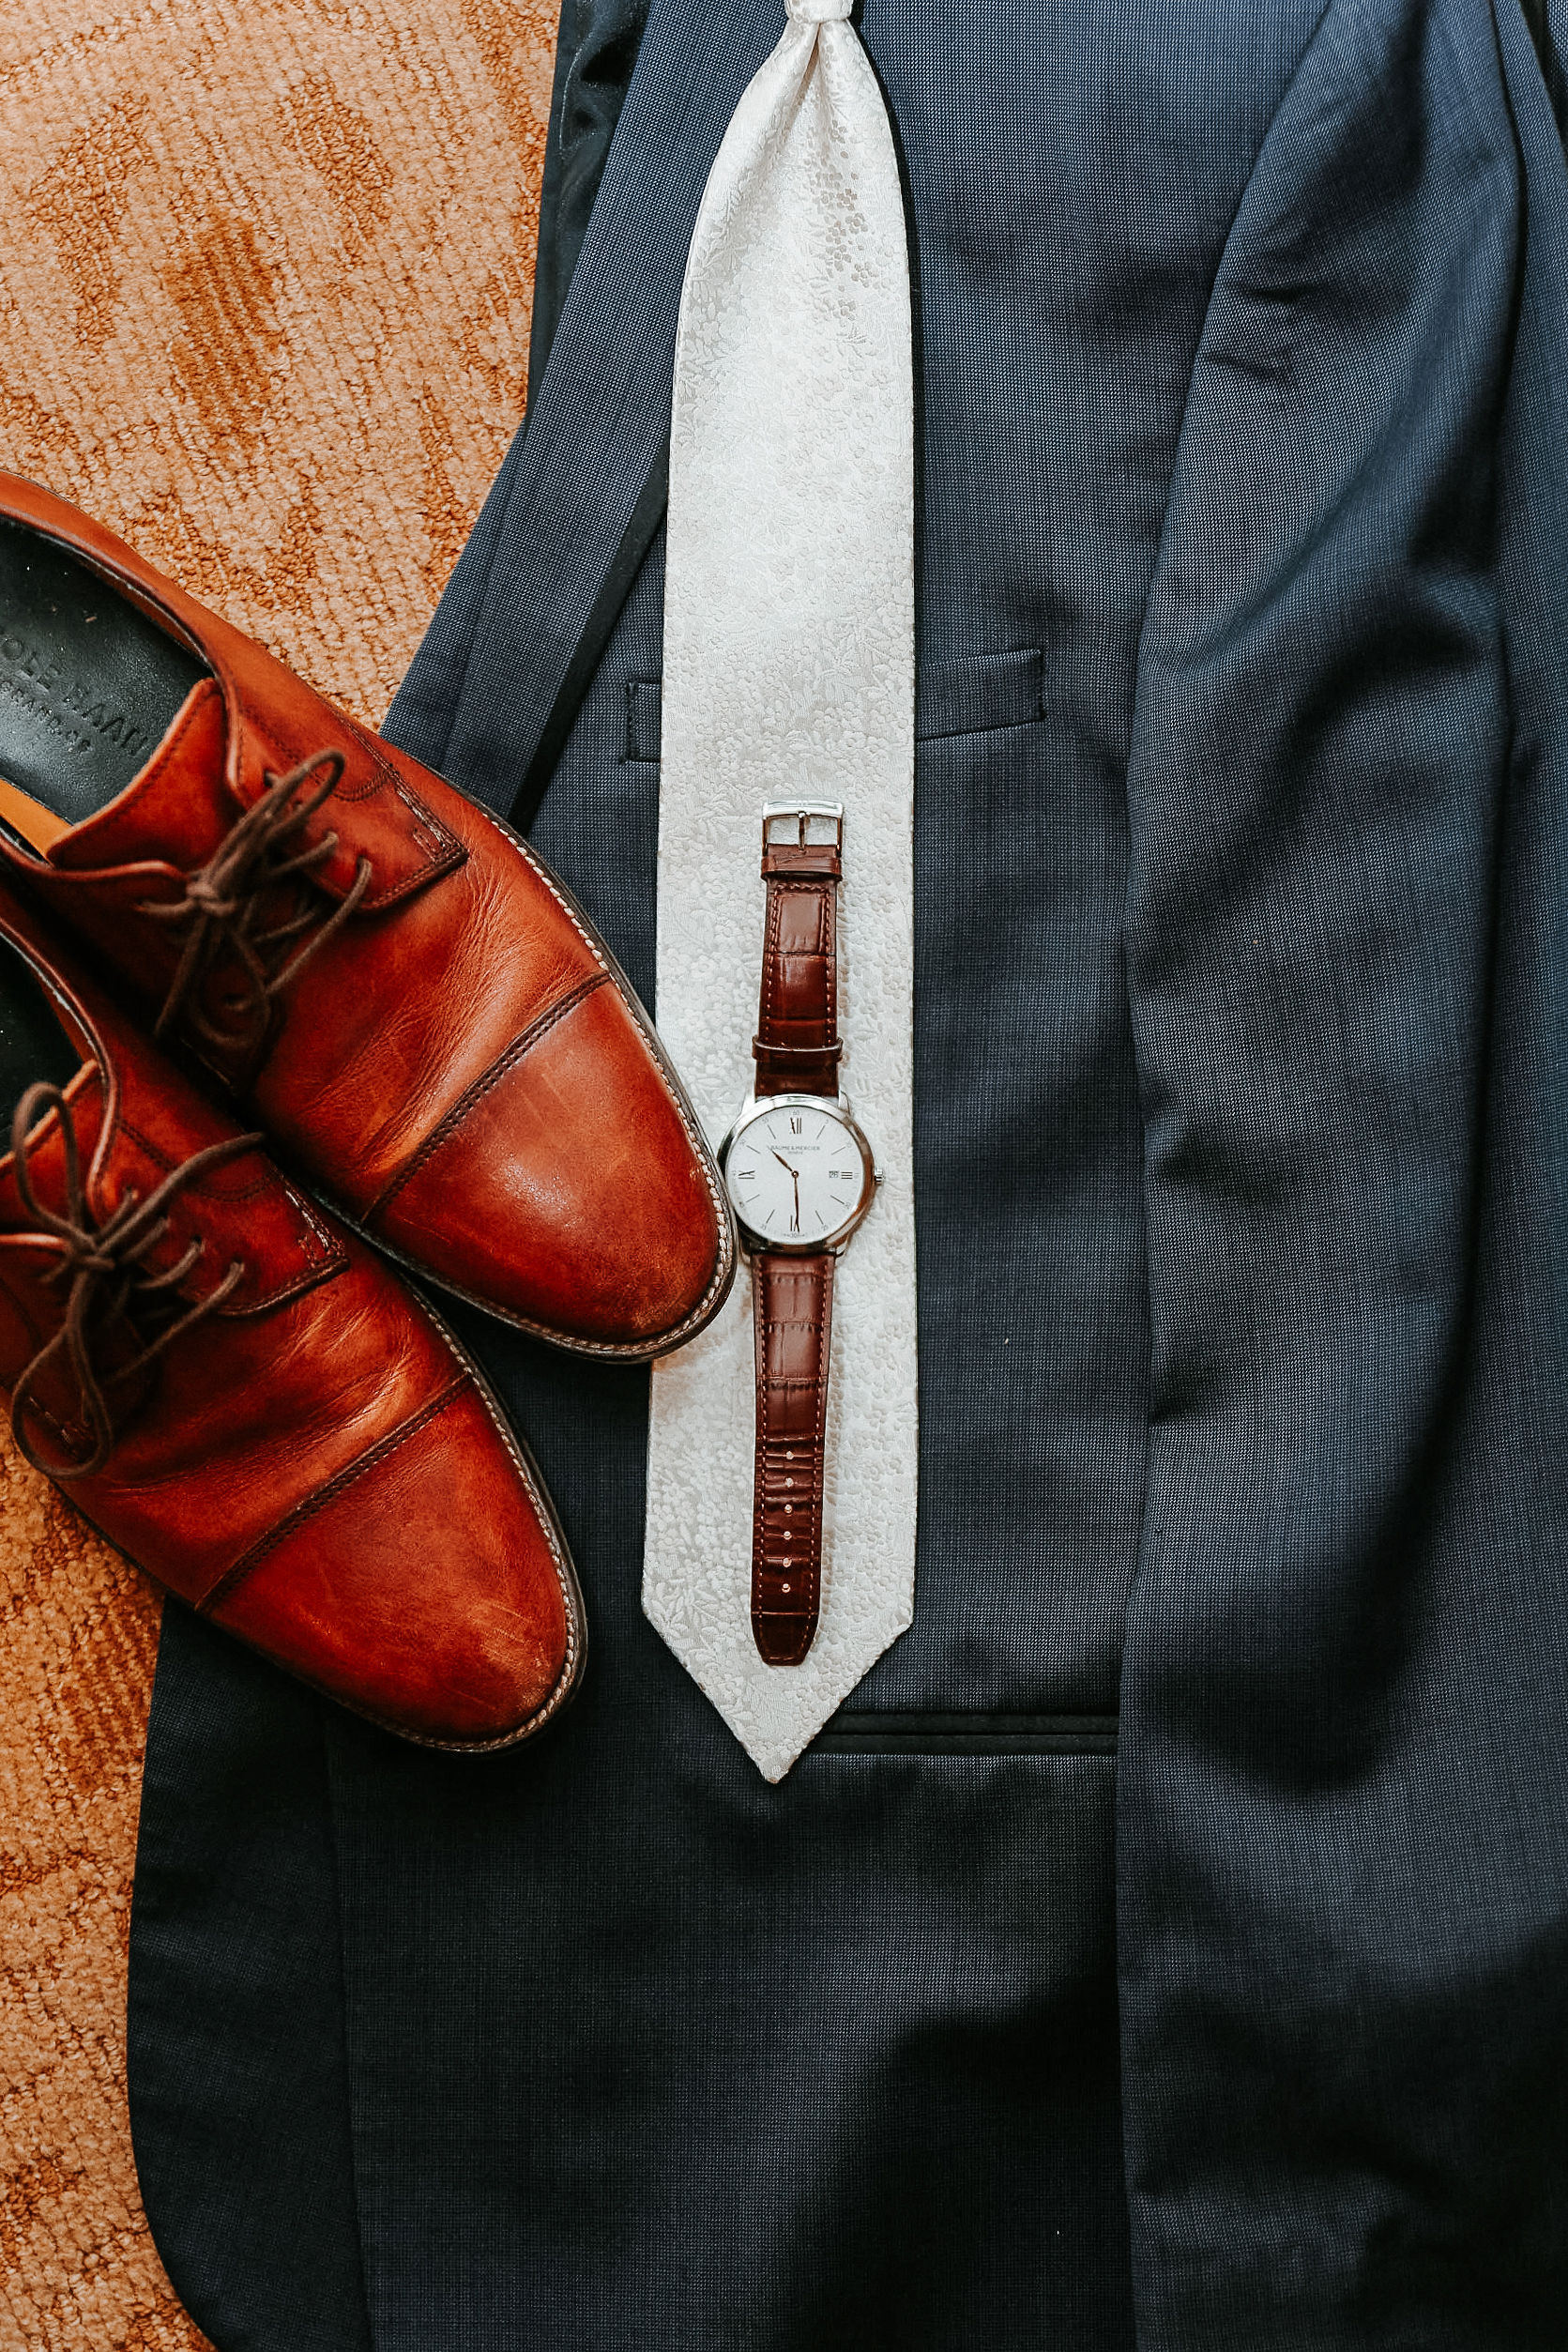 detail shots of groom's shoes, tie, and watch at St. Mark Orthodox Church